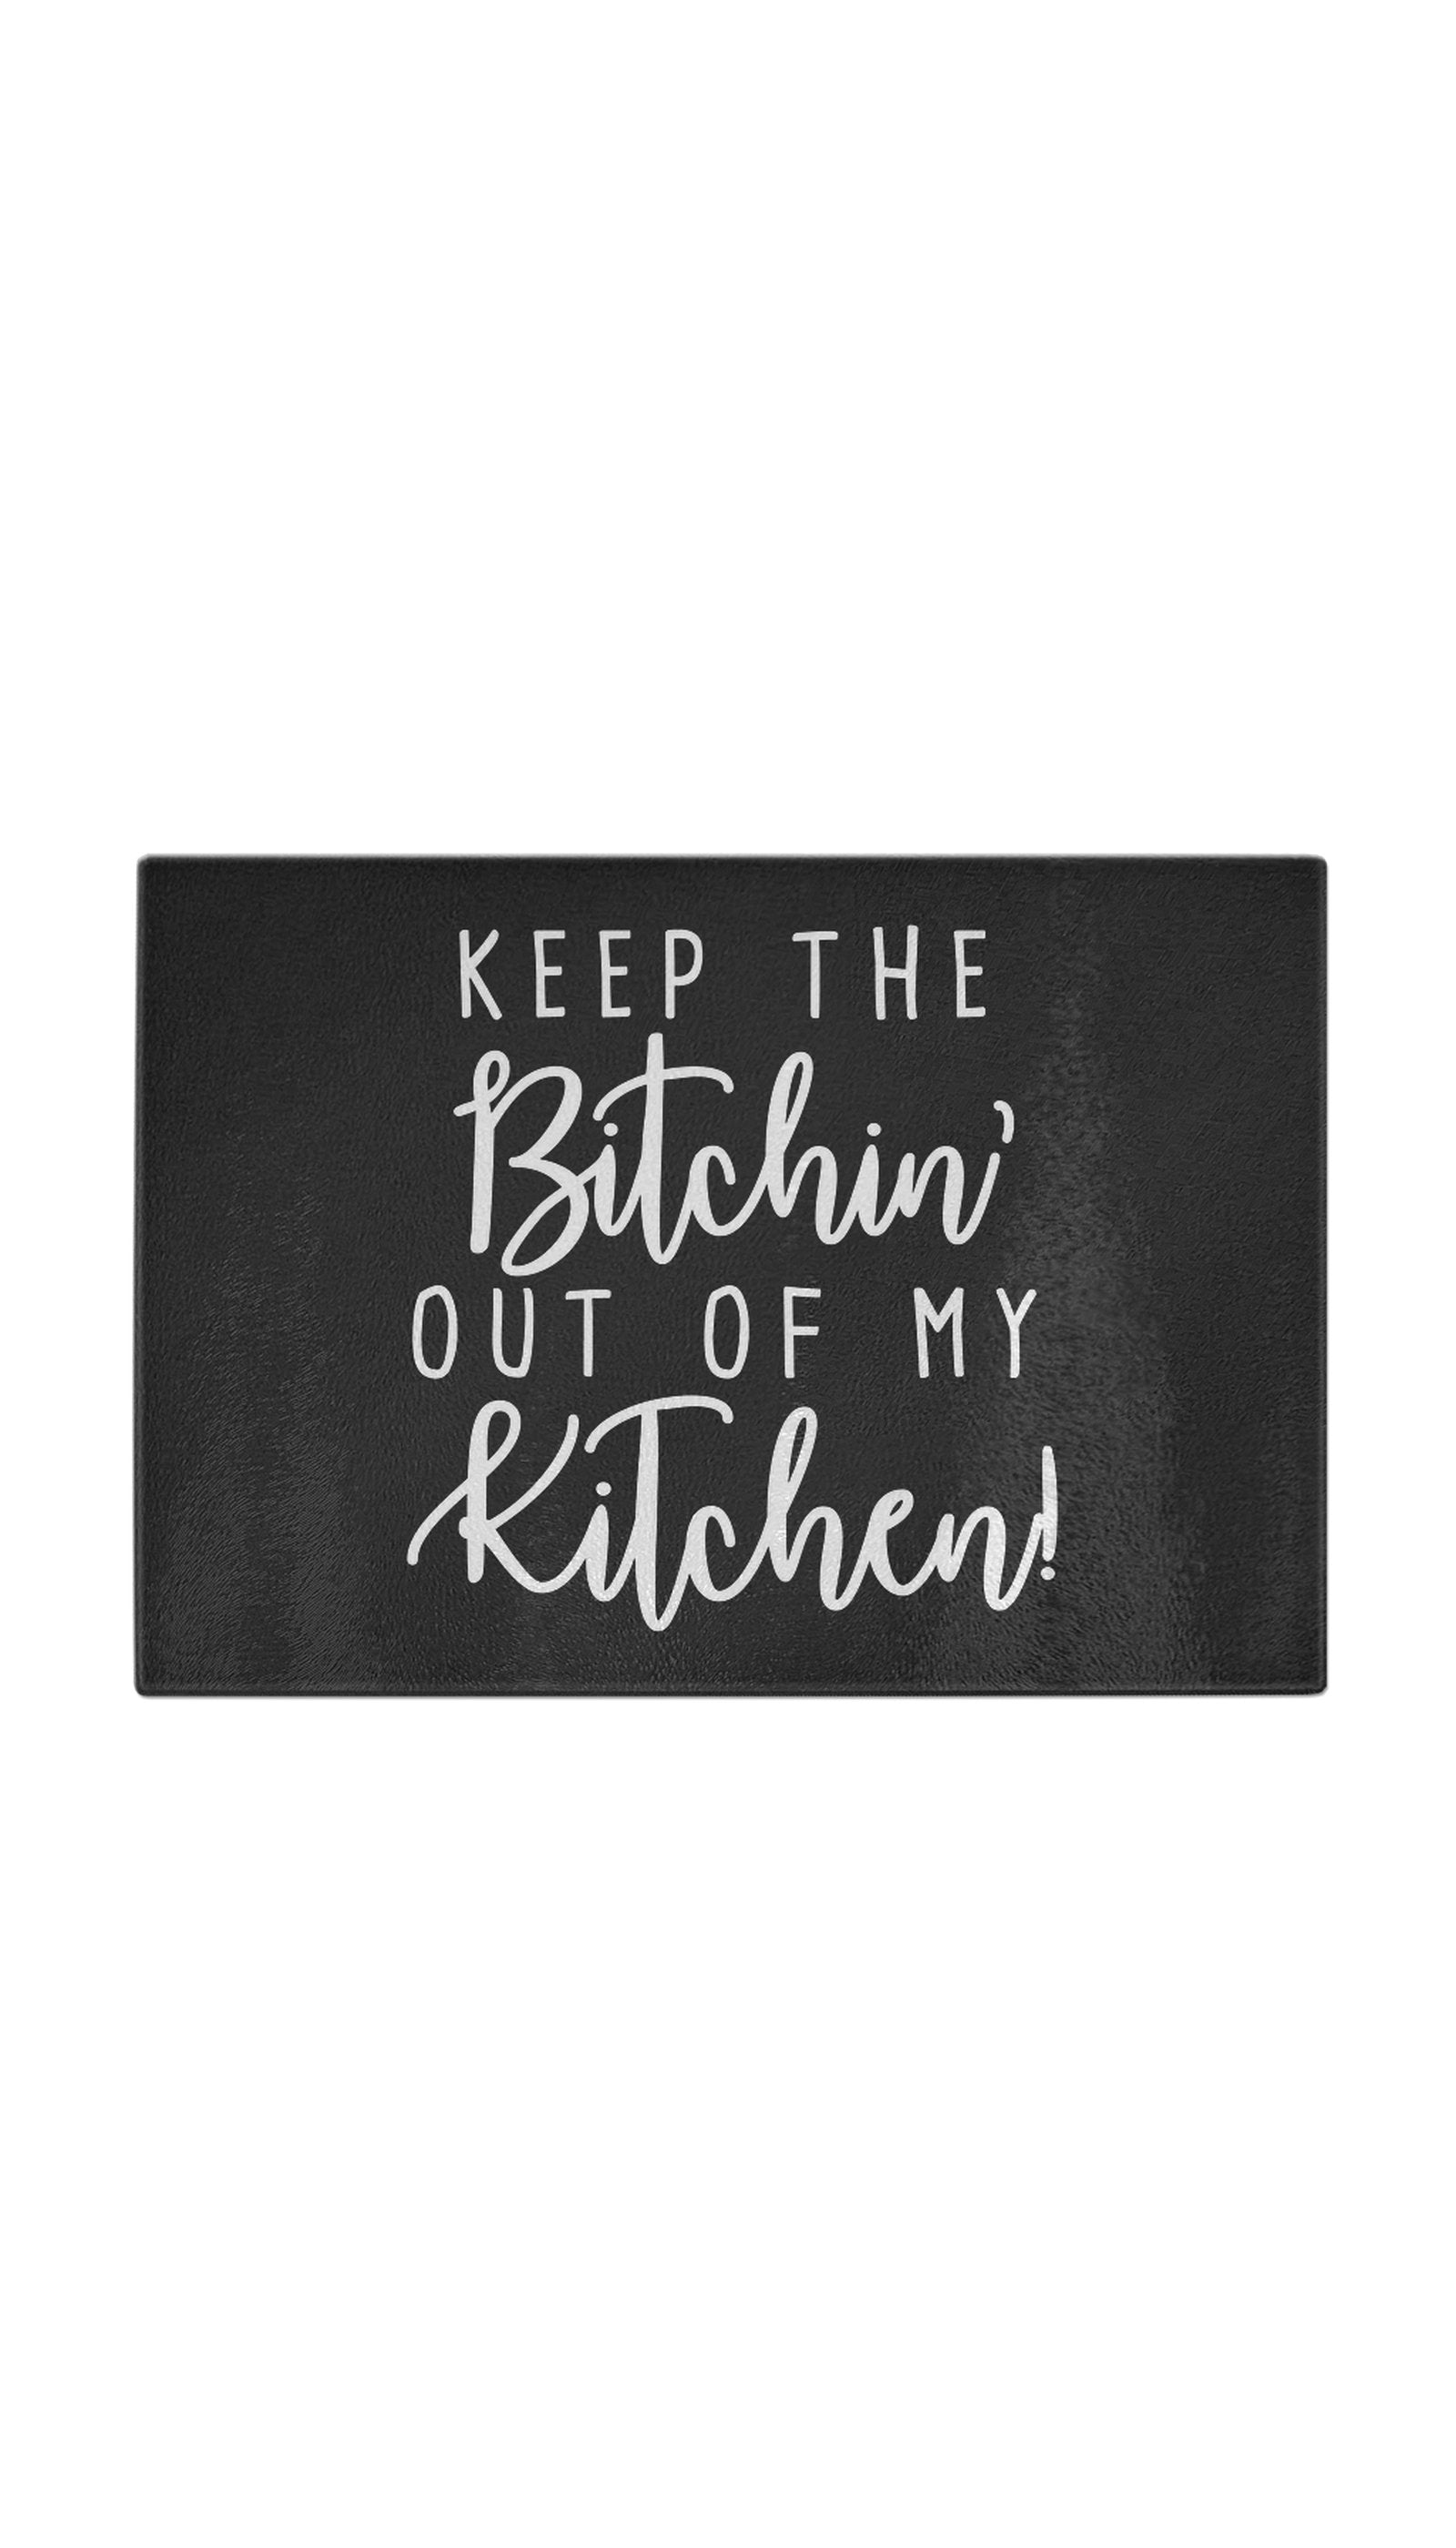 Keep The Bitchin Out Of My KitchenKeep The Bitchin Out Of My Kitchen Funny Kitchen Cutting Board